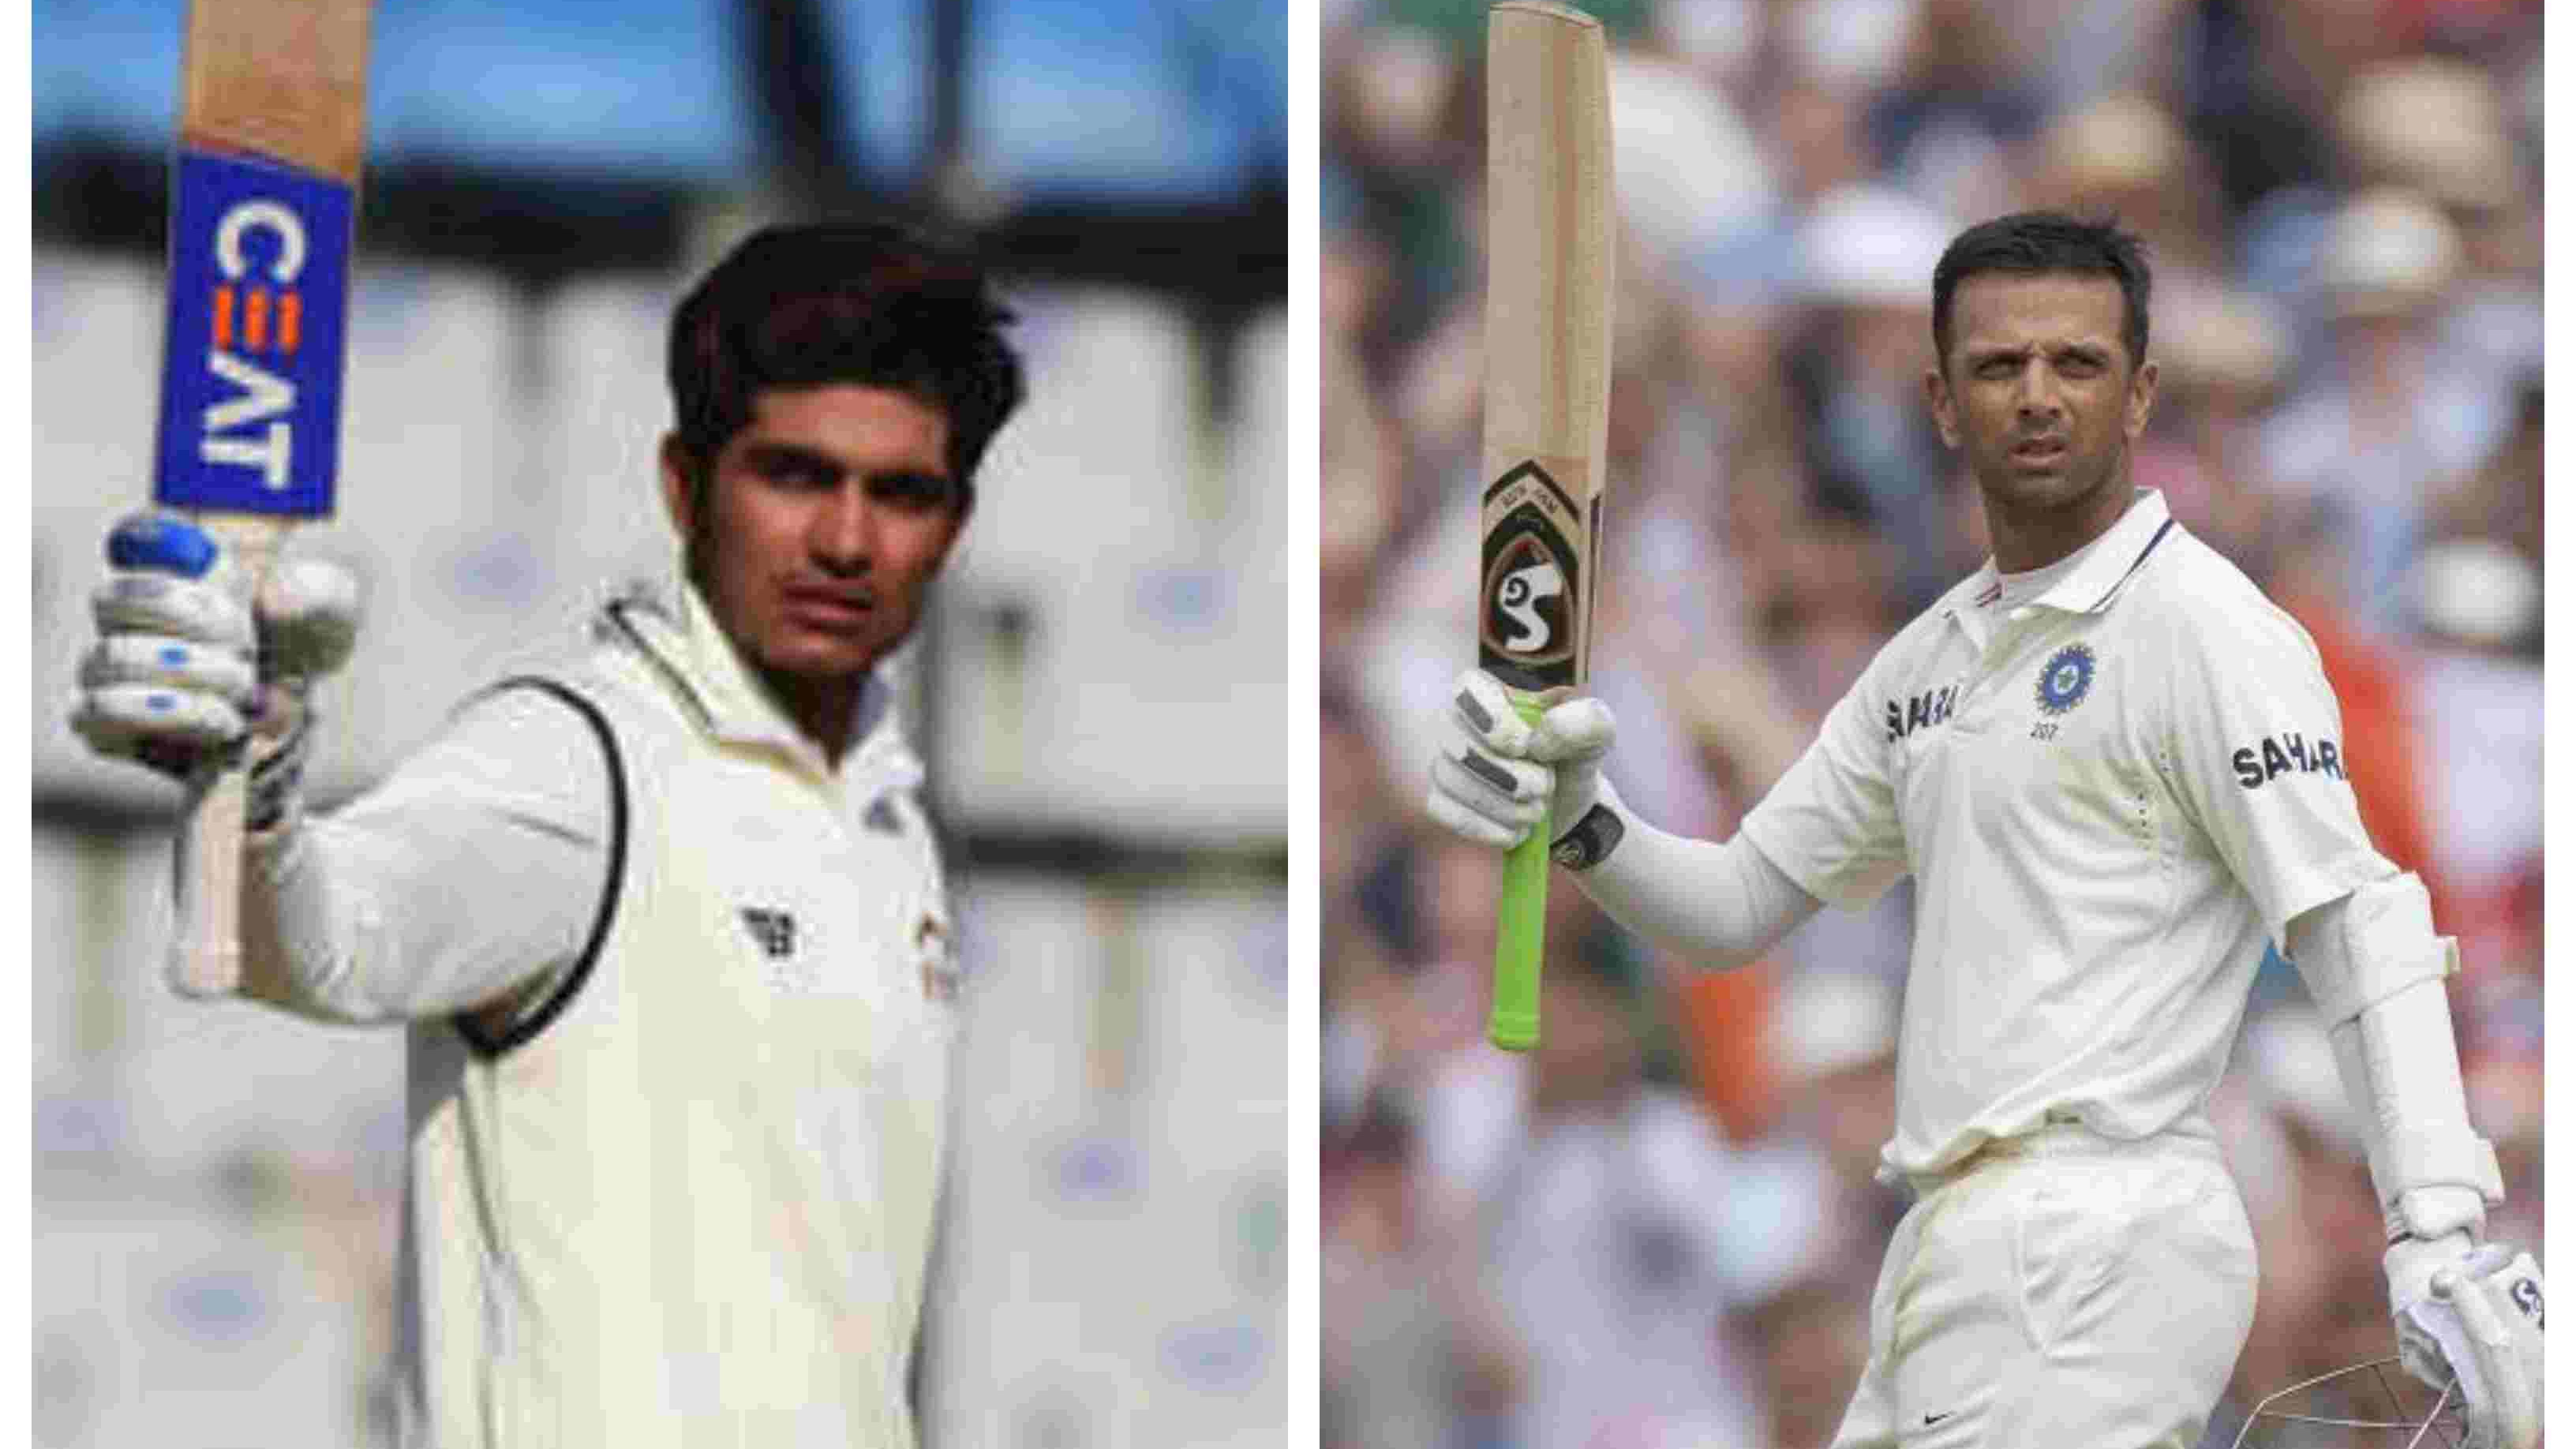 Ranji Trophy: Shubman Gill matches Rahul Dravid's unique feat in first-class cricket